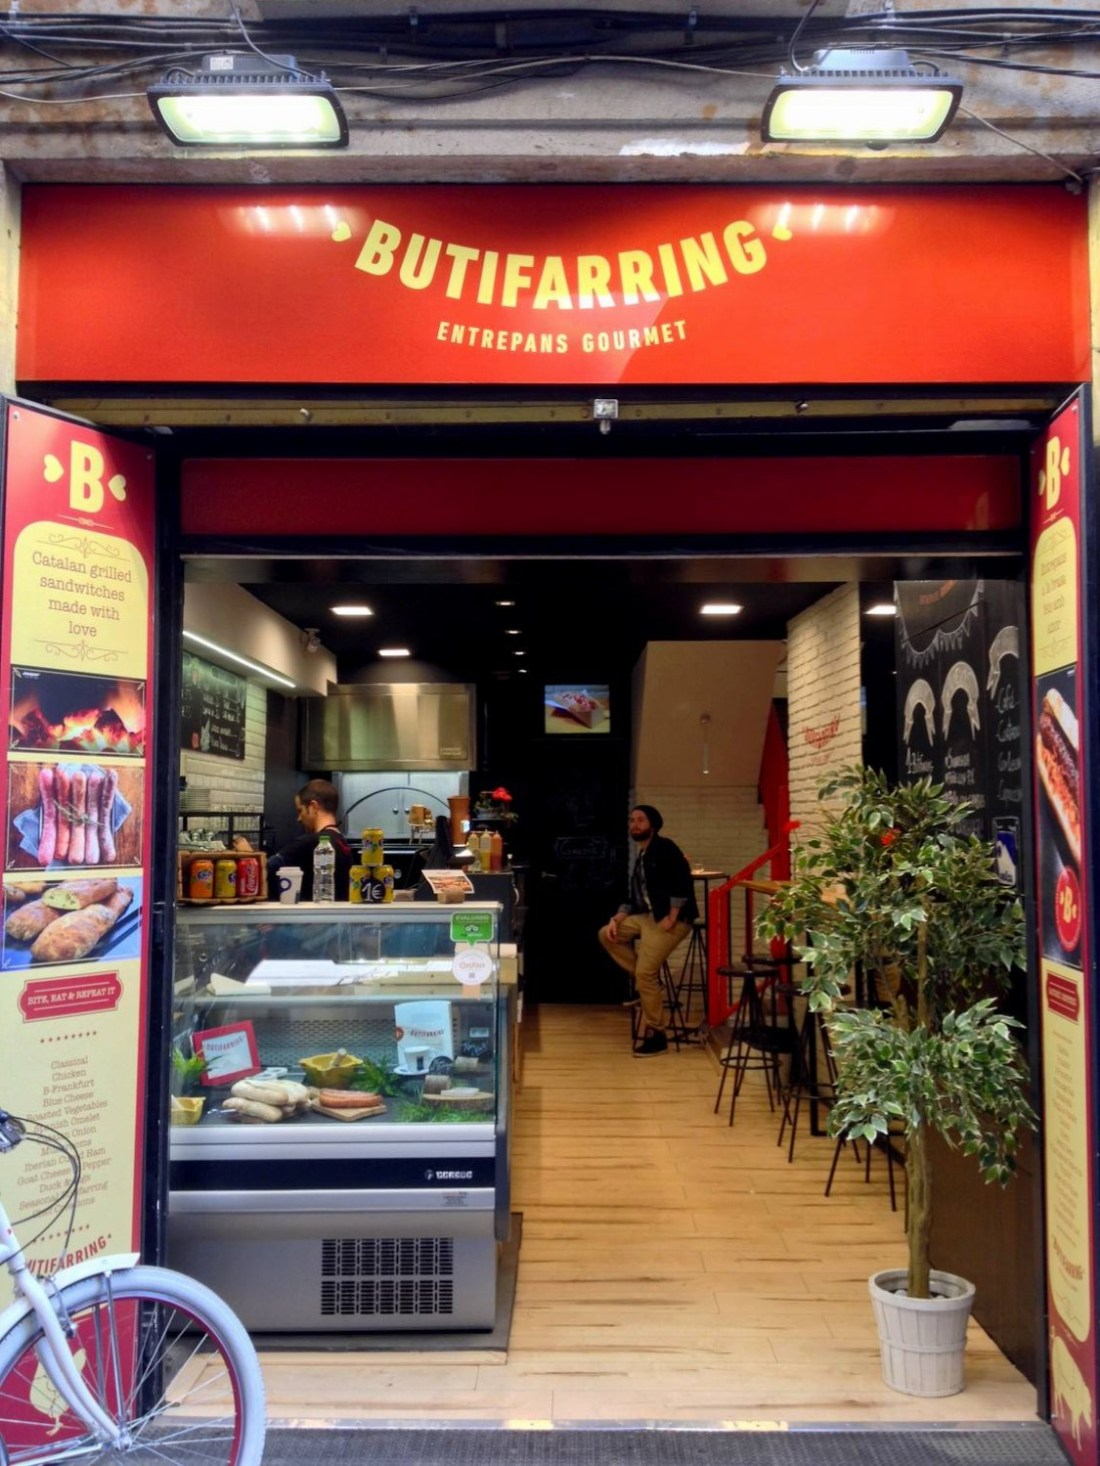 Butifarring's entrance - Barcelona, Spain